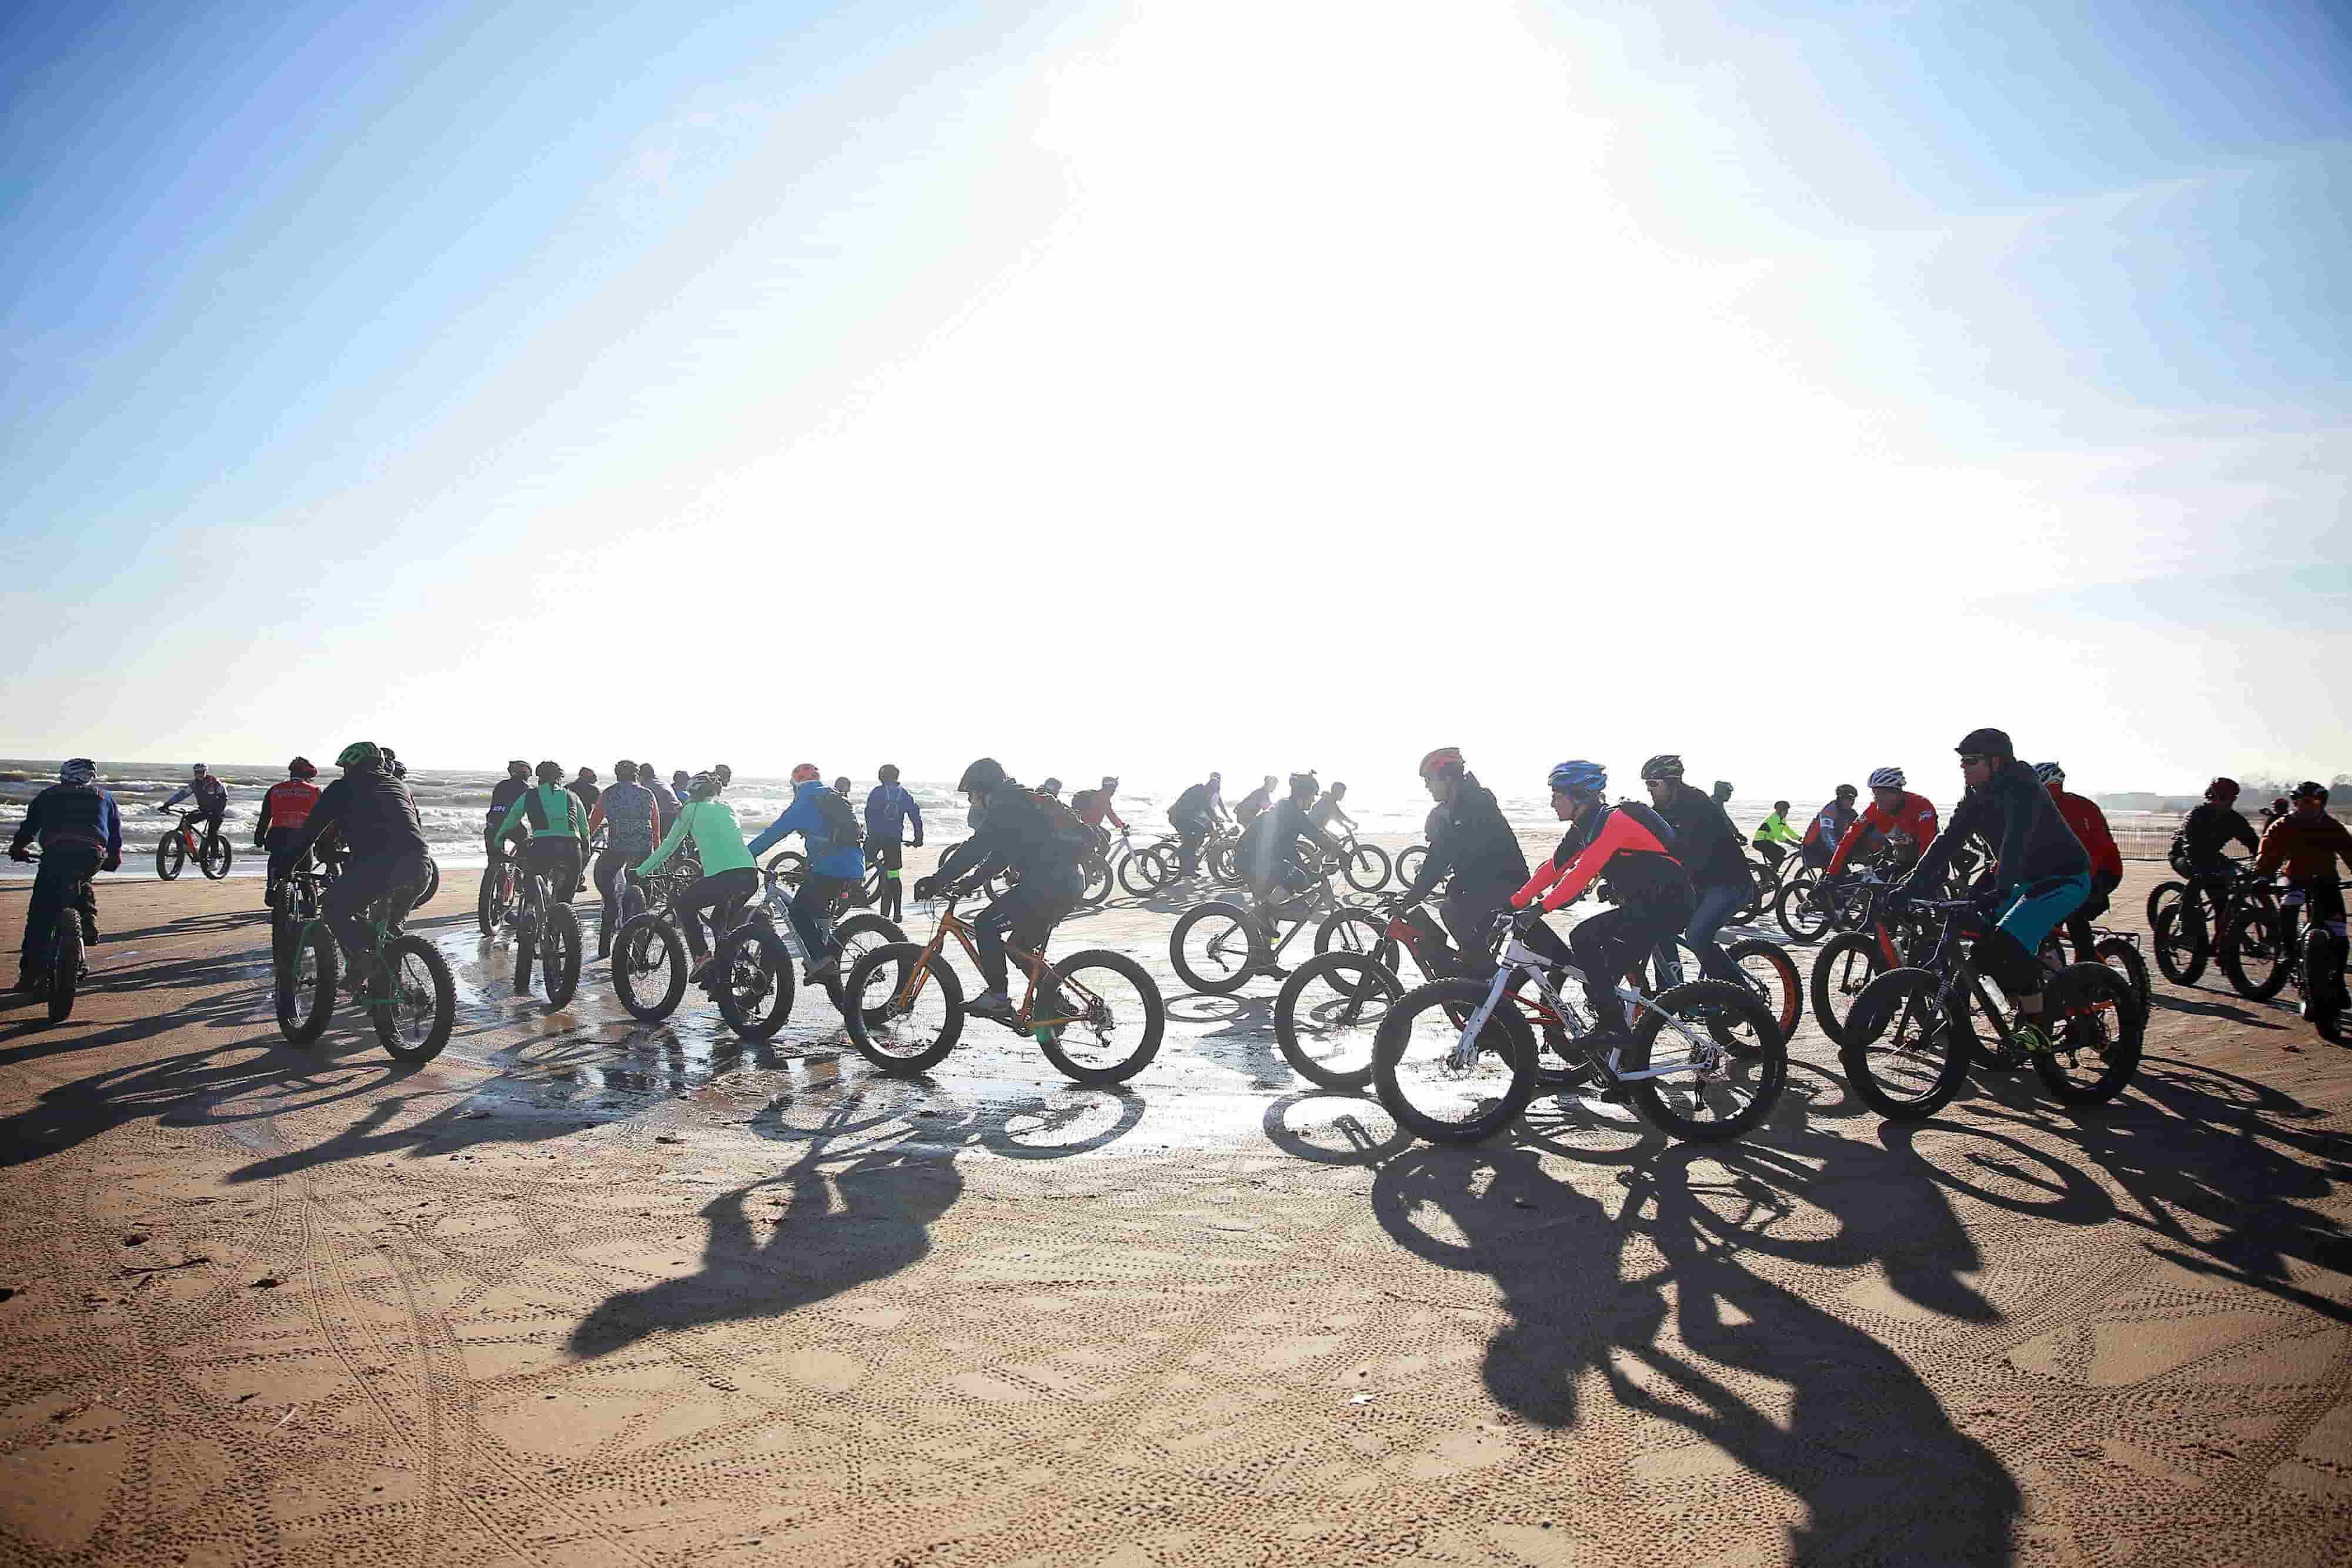 Dozens of fat bike cyclists riding on a beach on a sunny day in cold weather gear